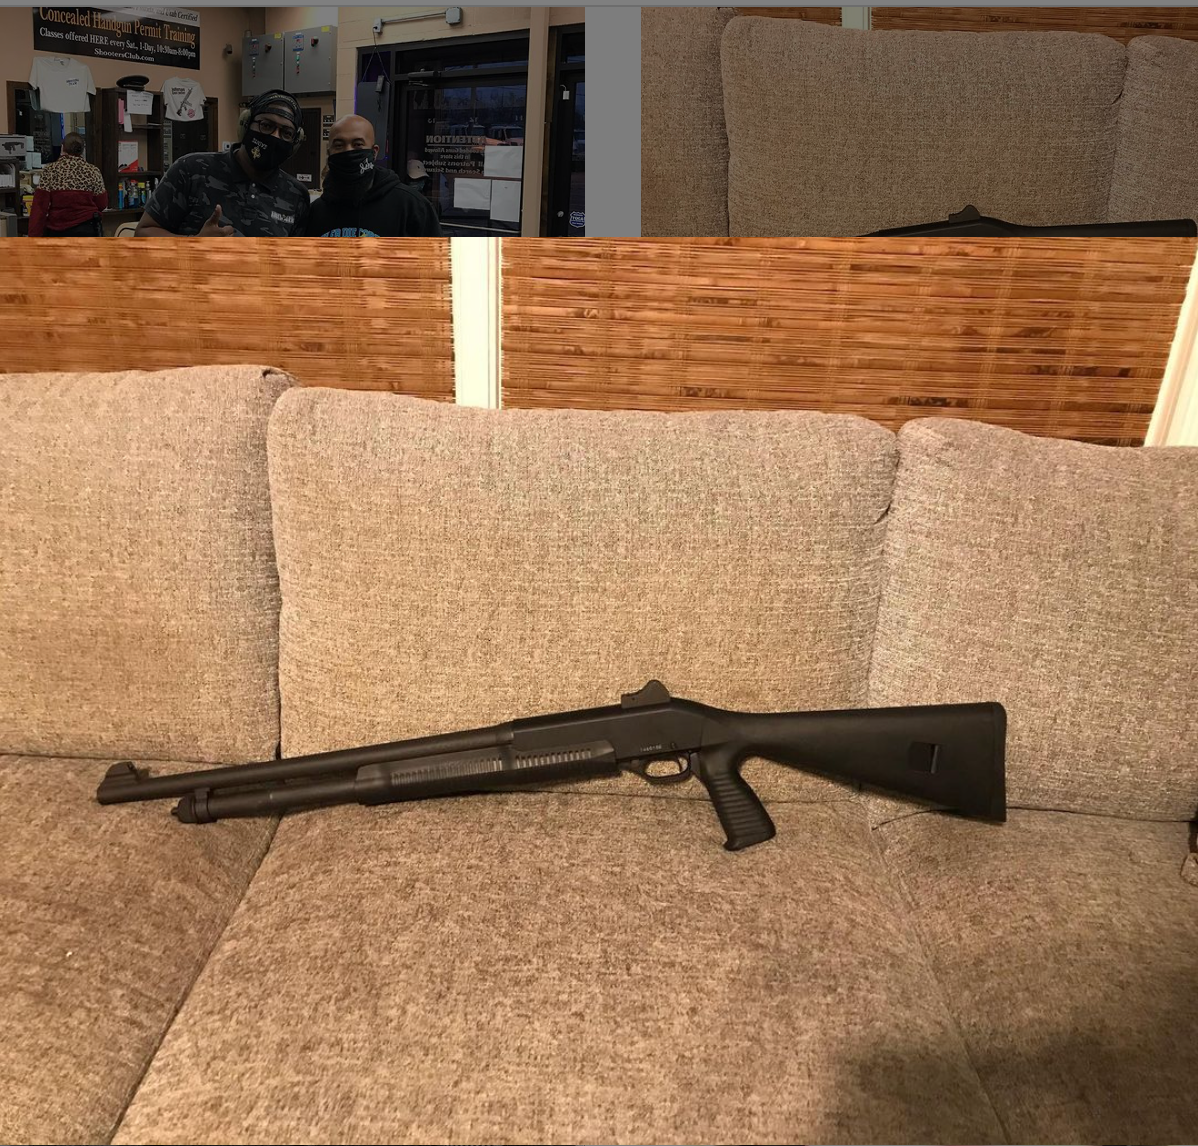 In Home Firearm Consulting